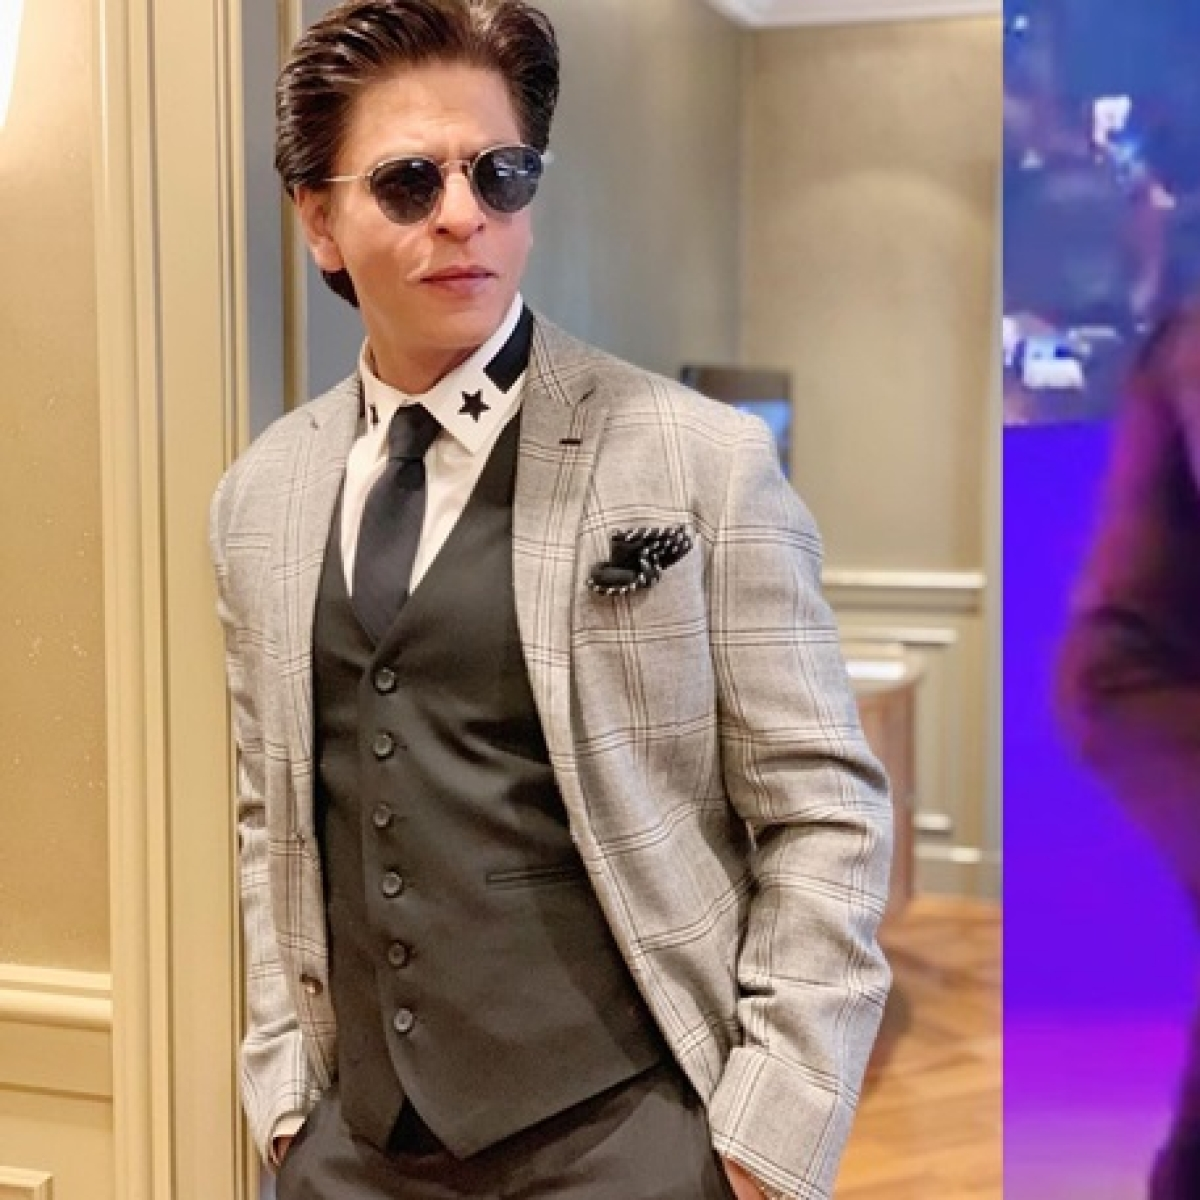 Watch Shah Rukh Khan twerk to 'Apna Time Aayega' with special kids in Melbourne